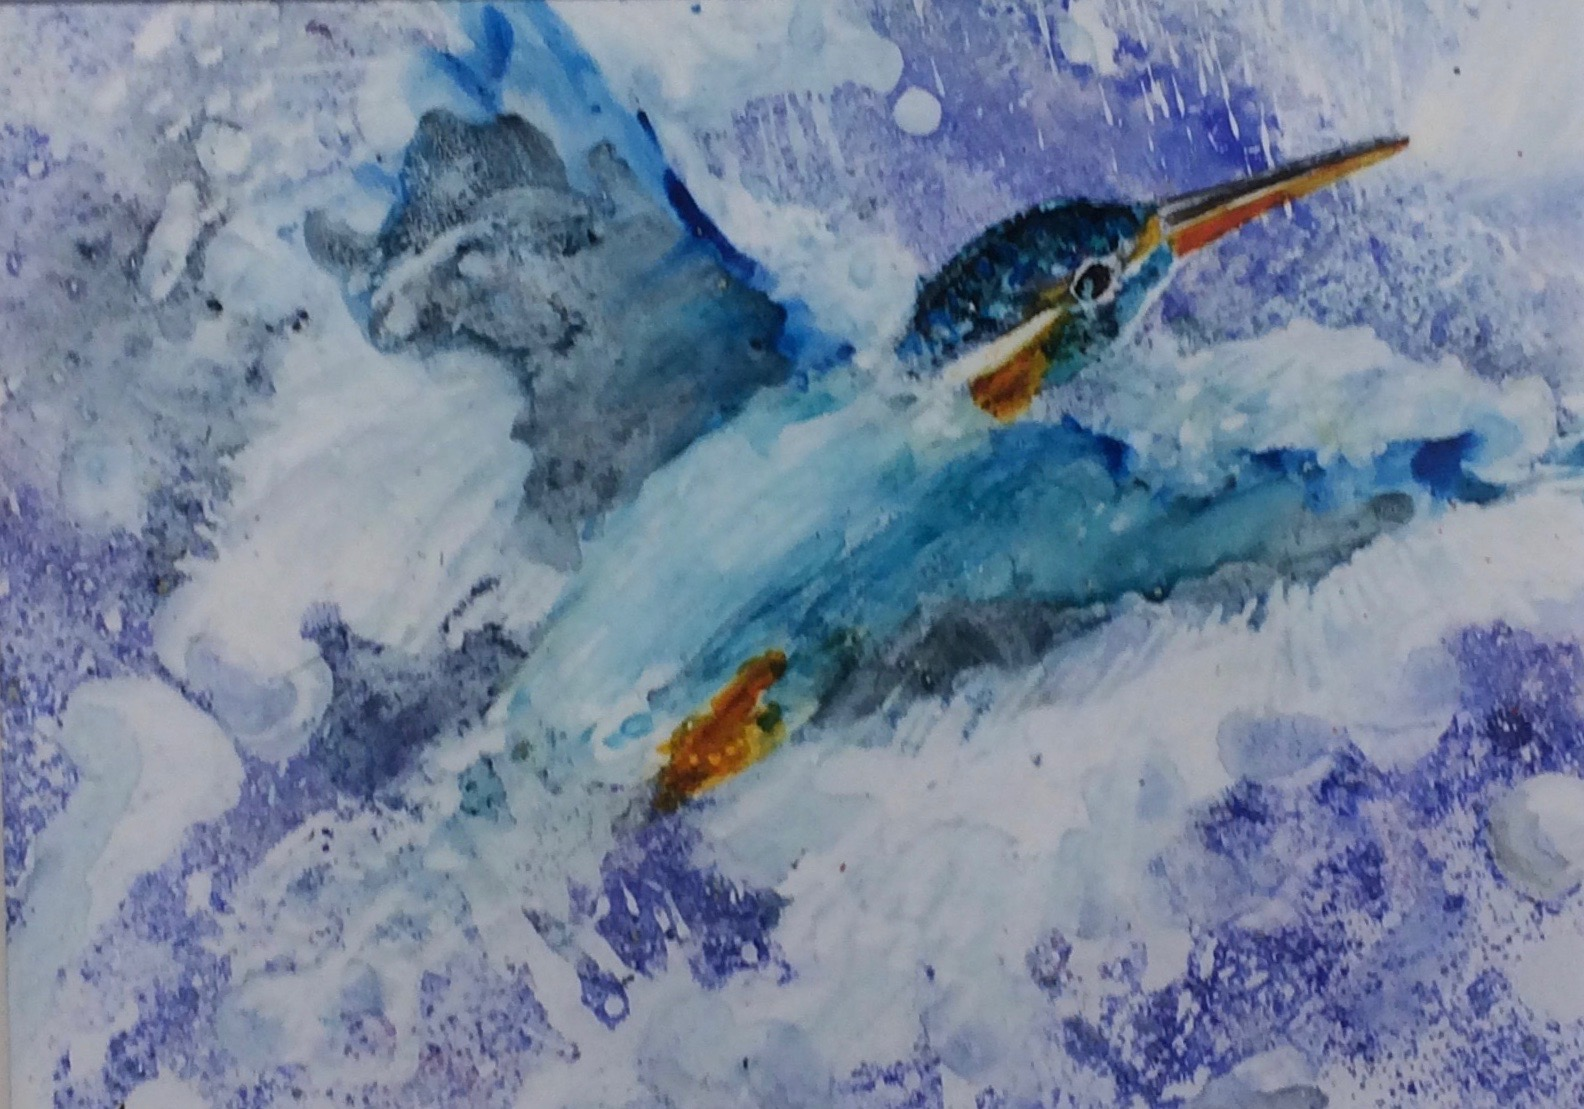 Making a Splash - SOLD